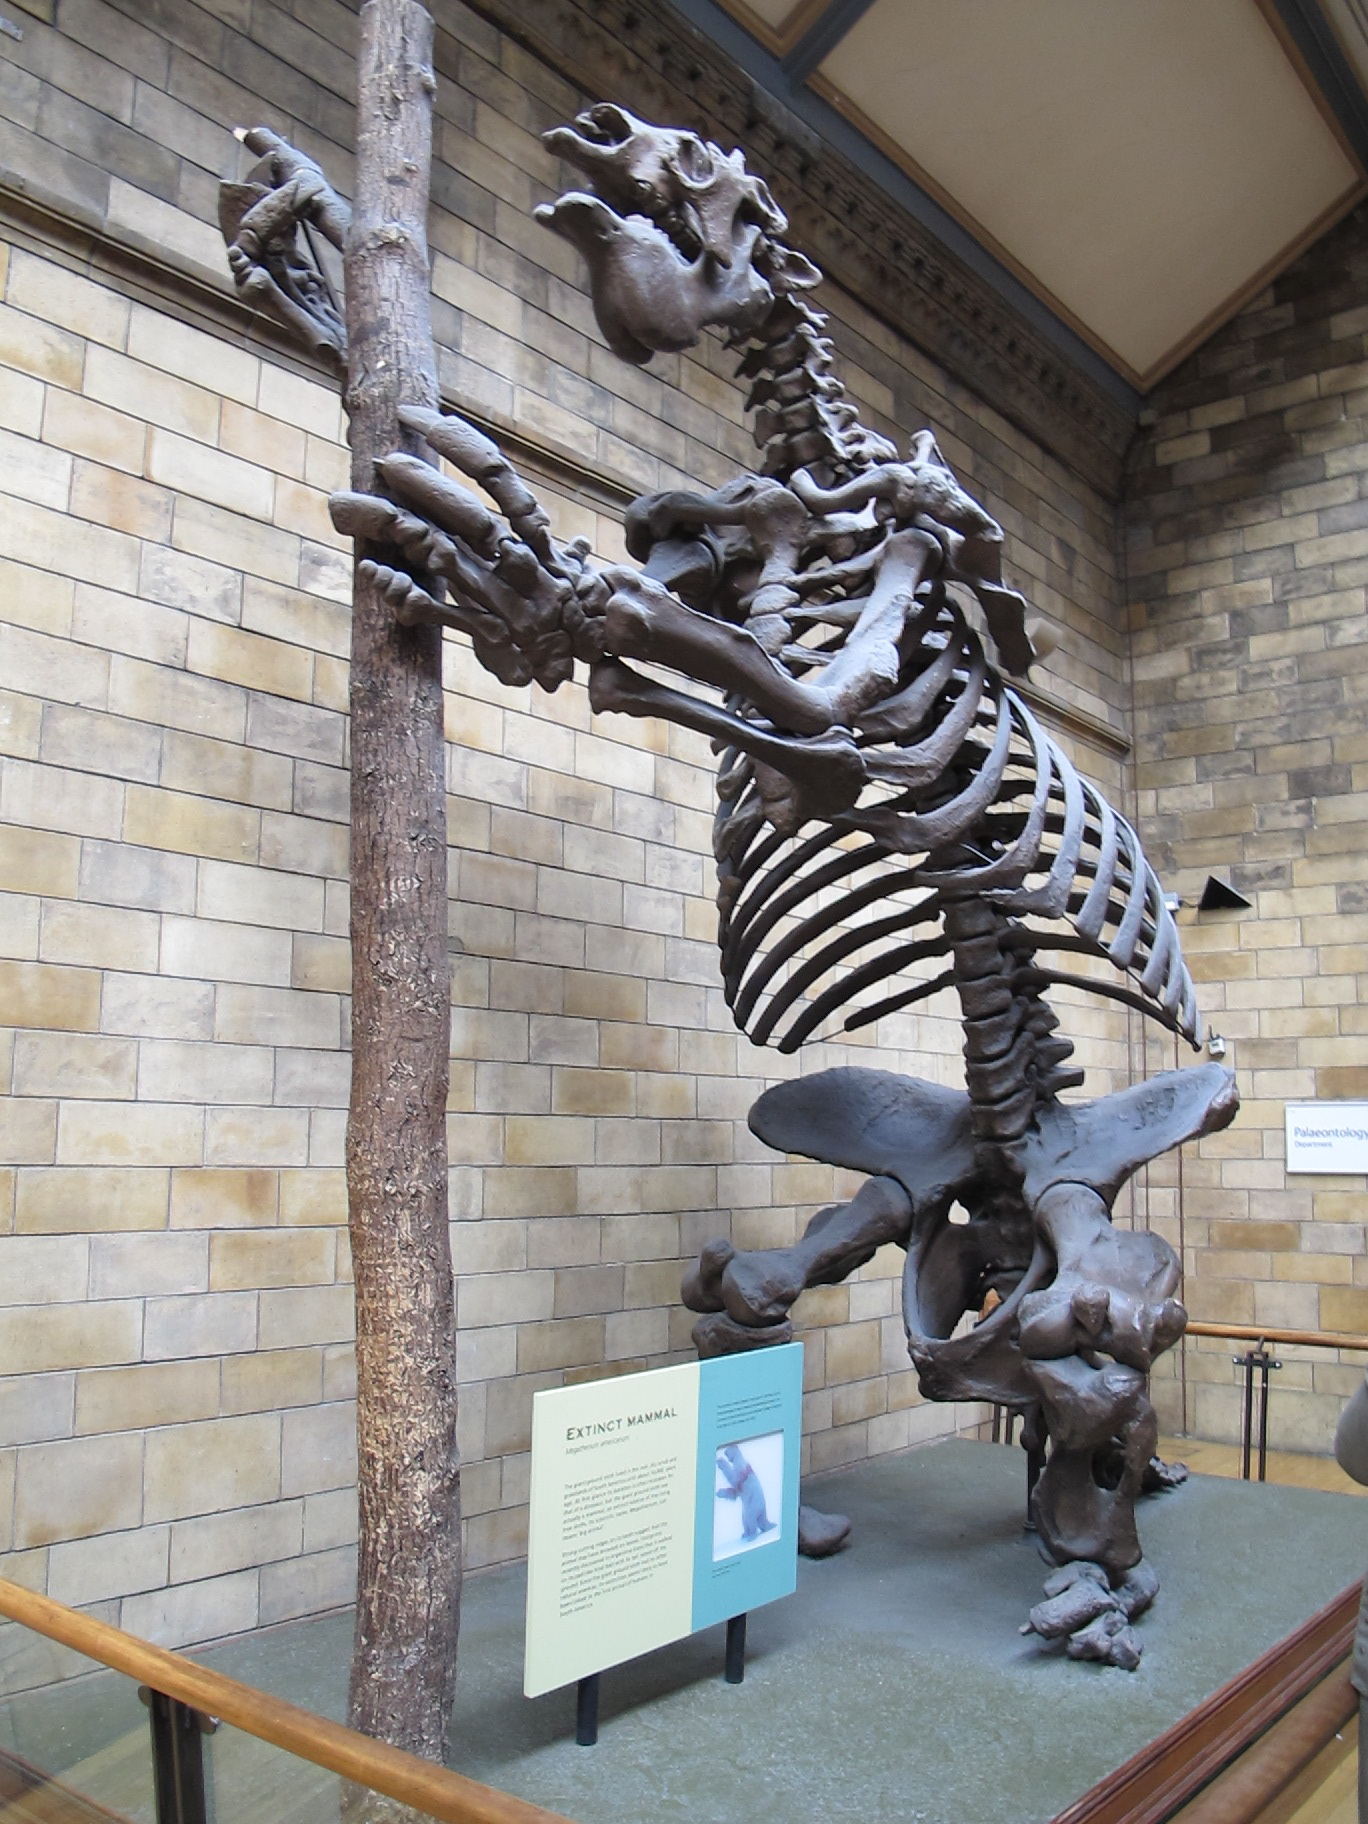 Here's the giant ground sloth we saw in London. These now-extinct mammals were more than 12 feet tall when they stood erect.